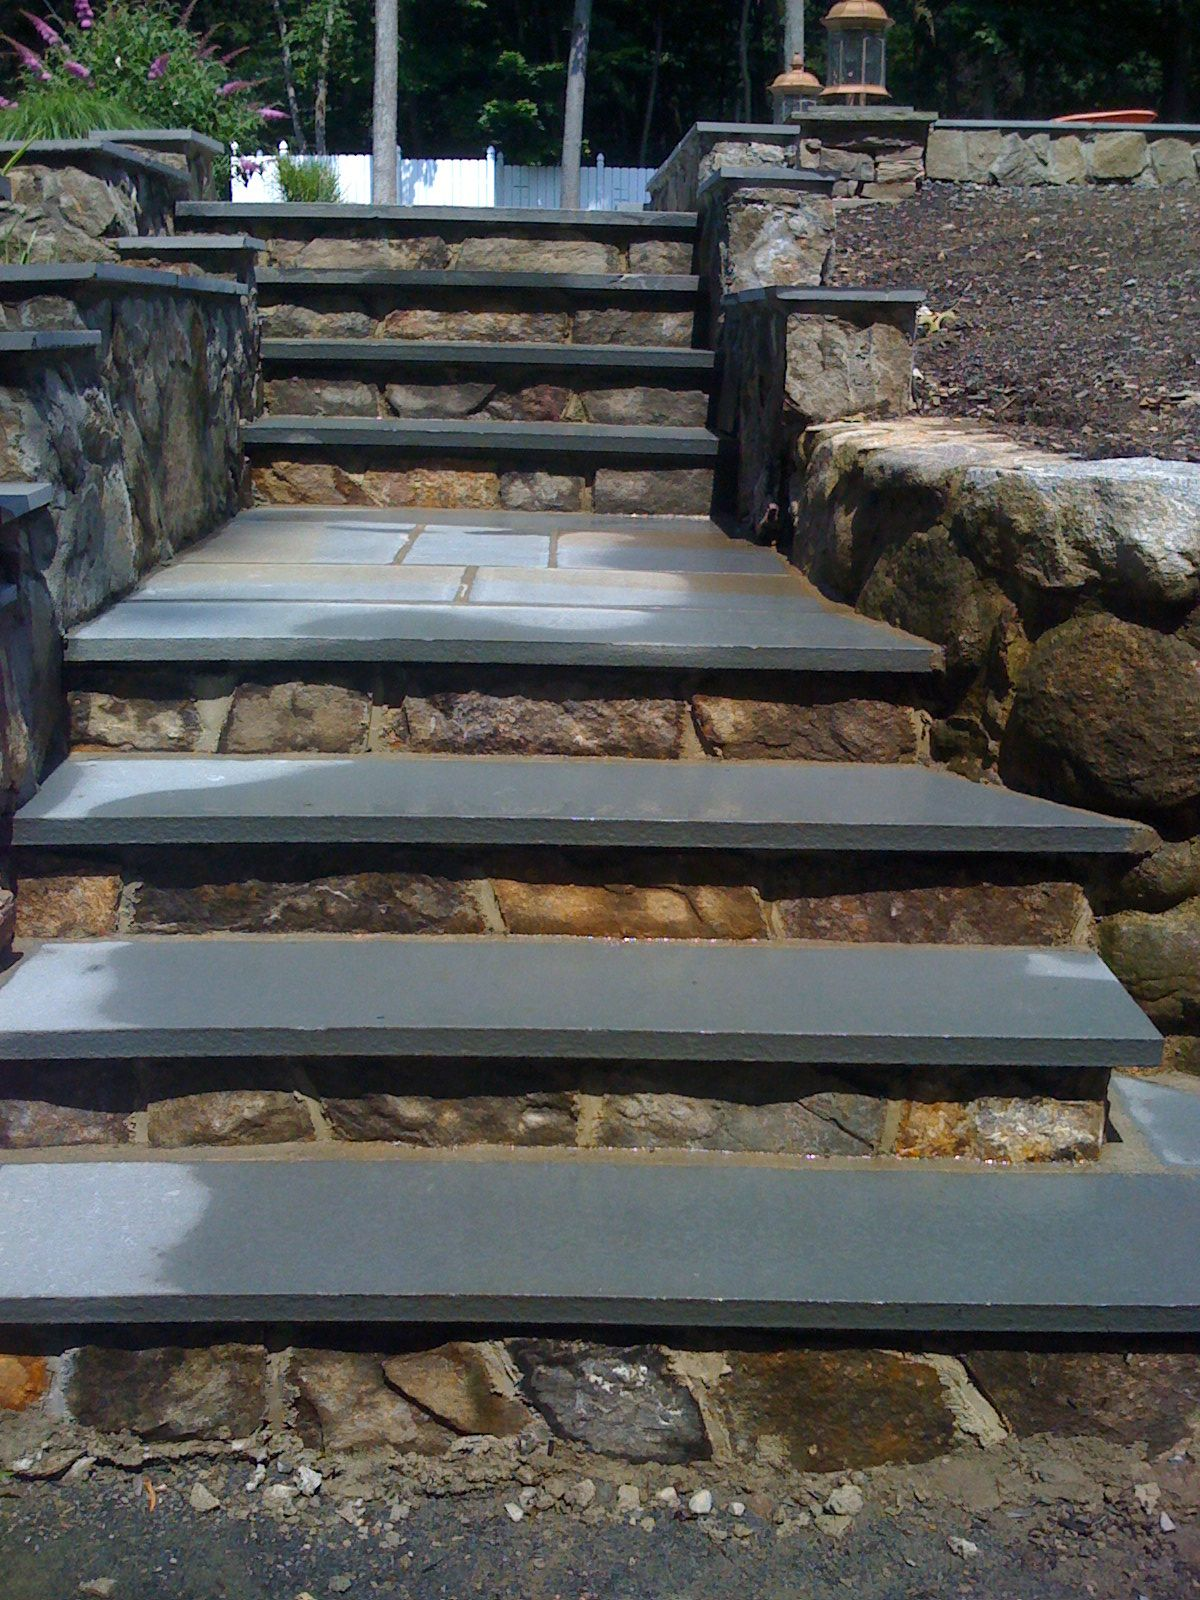 How to build steps with pavers - Pavers Natural Blues Stone Steps With 1 2 Inch Veneer Face Stone